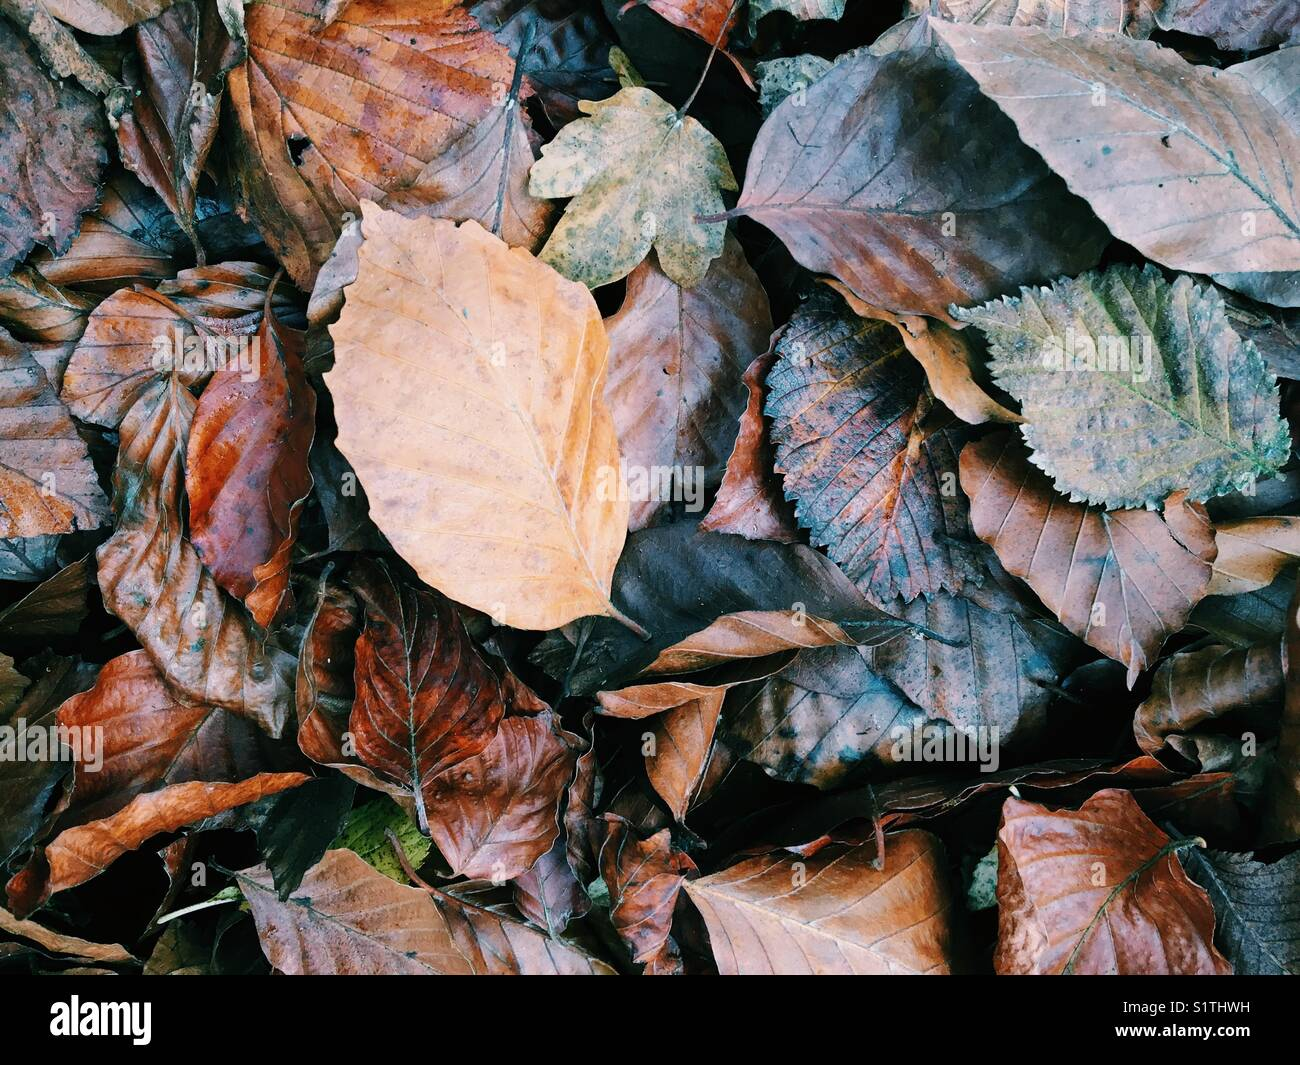 Fallen leaves on the ground in winter - Stock Image